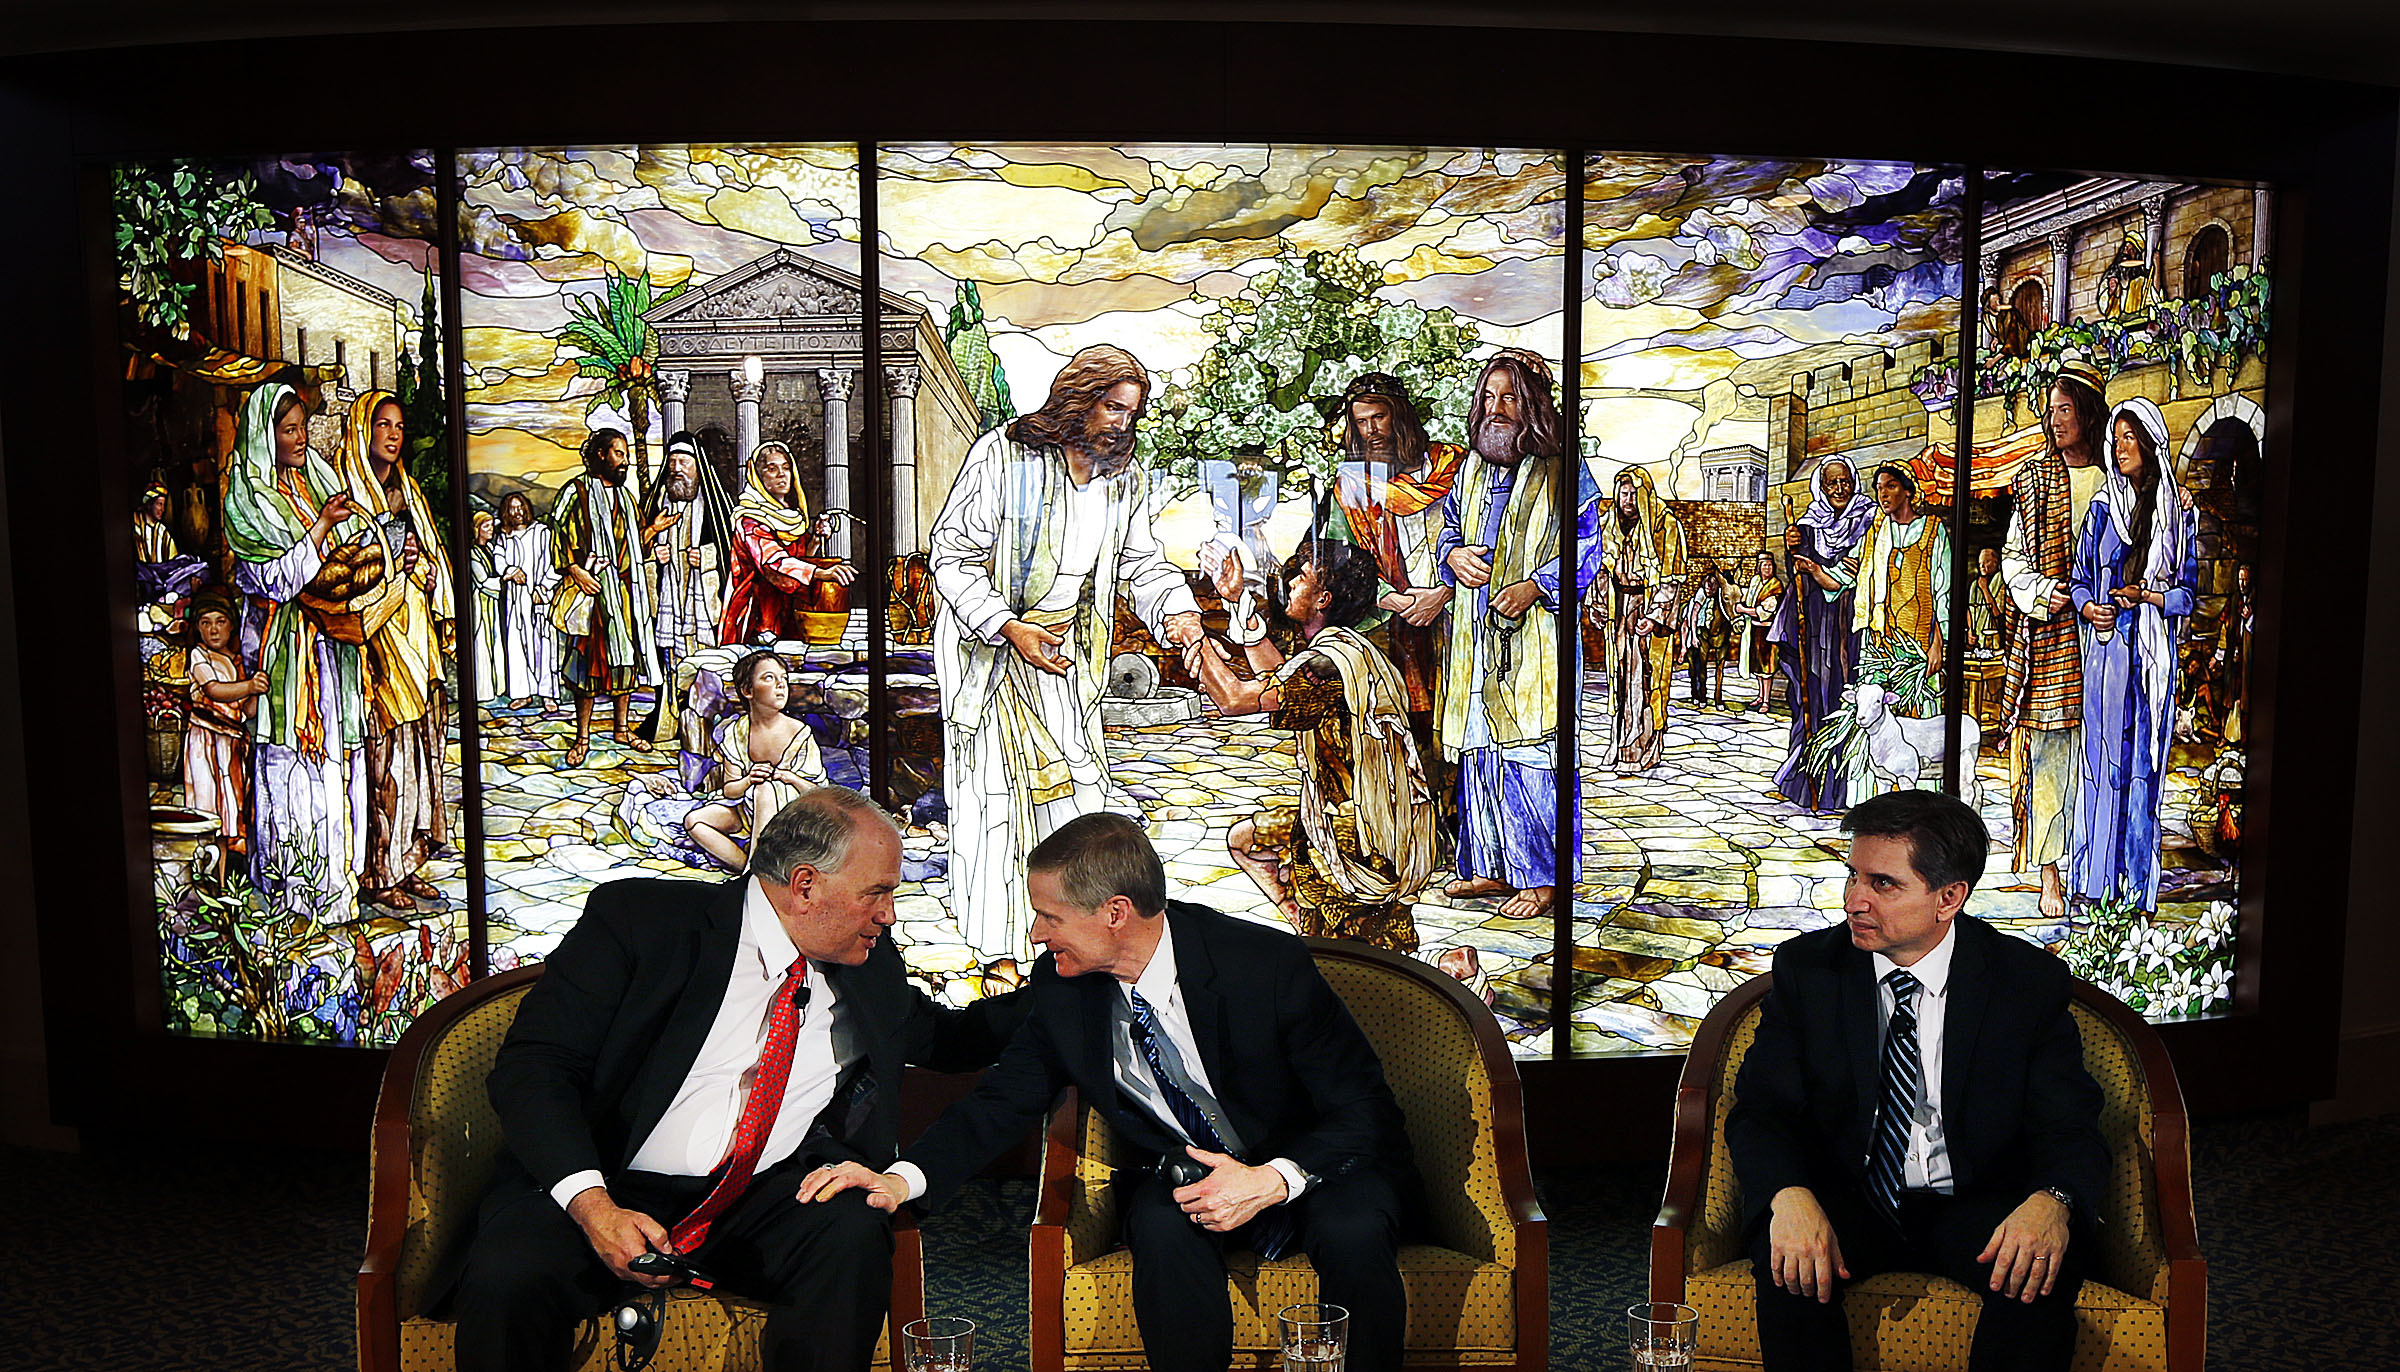 Elder Ronald A. Rasband, left, and Elder David A. Bednar of the Quorum of the Twelve Apostles along with Elder Massimo De Feo of the Quorum of the Seventy prepare to begin a press conference in the Rome Temple Visitor's Center of The Church of Jesus Christ of Latter-day Saints on Monday, Jan. 14, 2019.